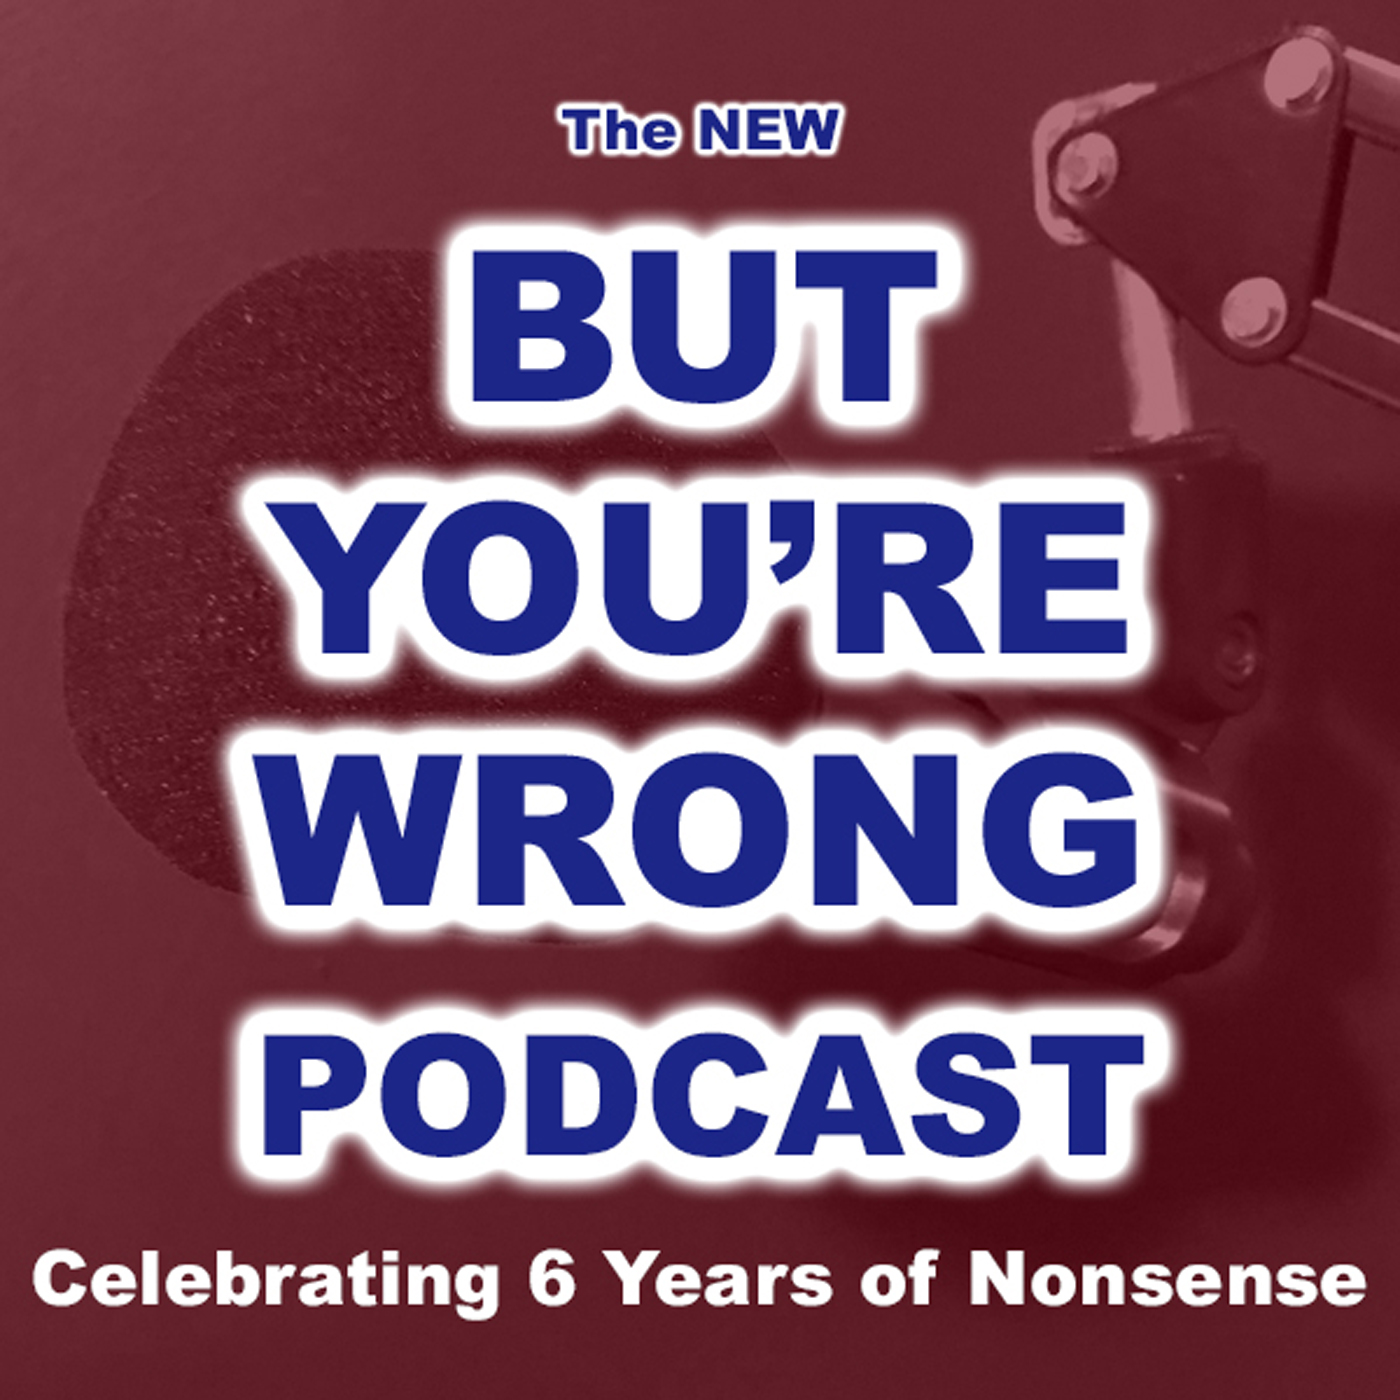 But You're Wrong Podcast by Keith Bodayla & Greg DiNicola on Apple